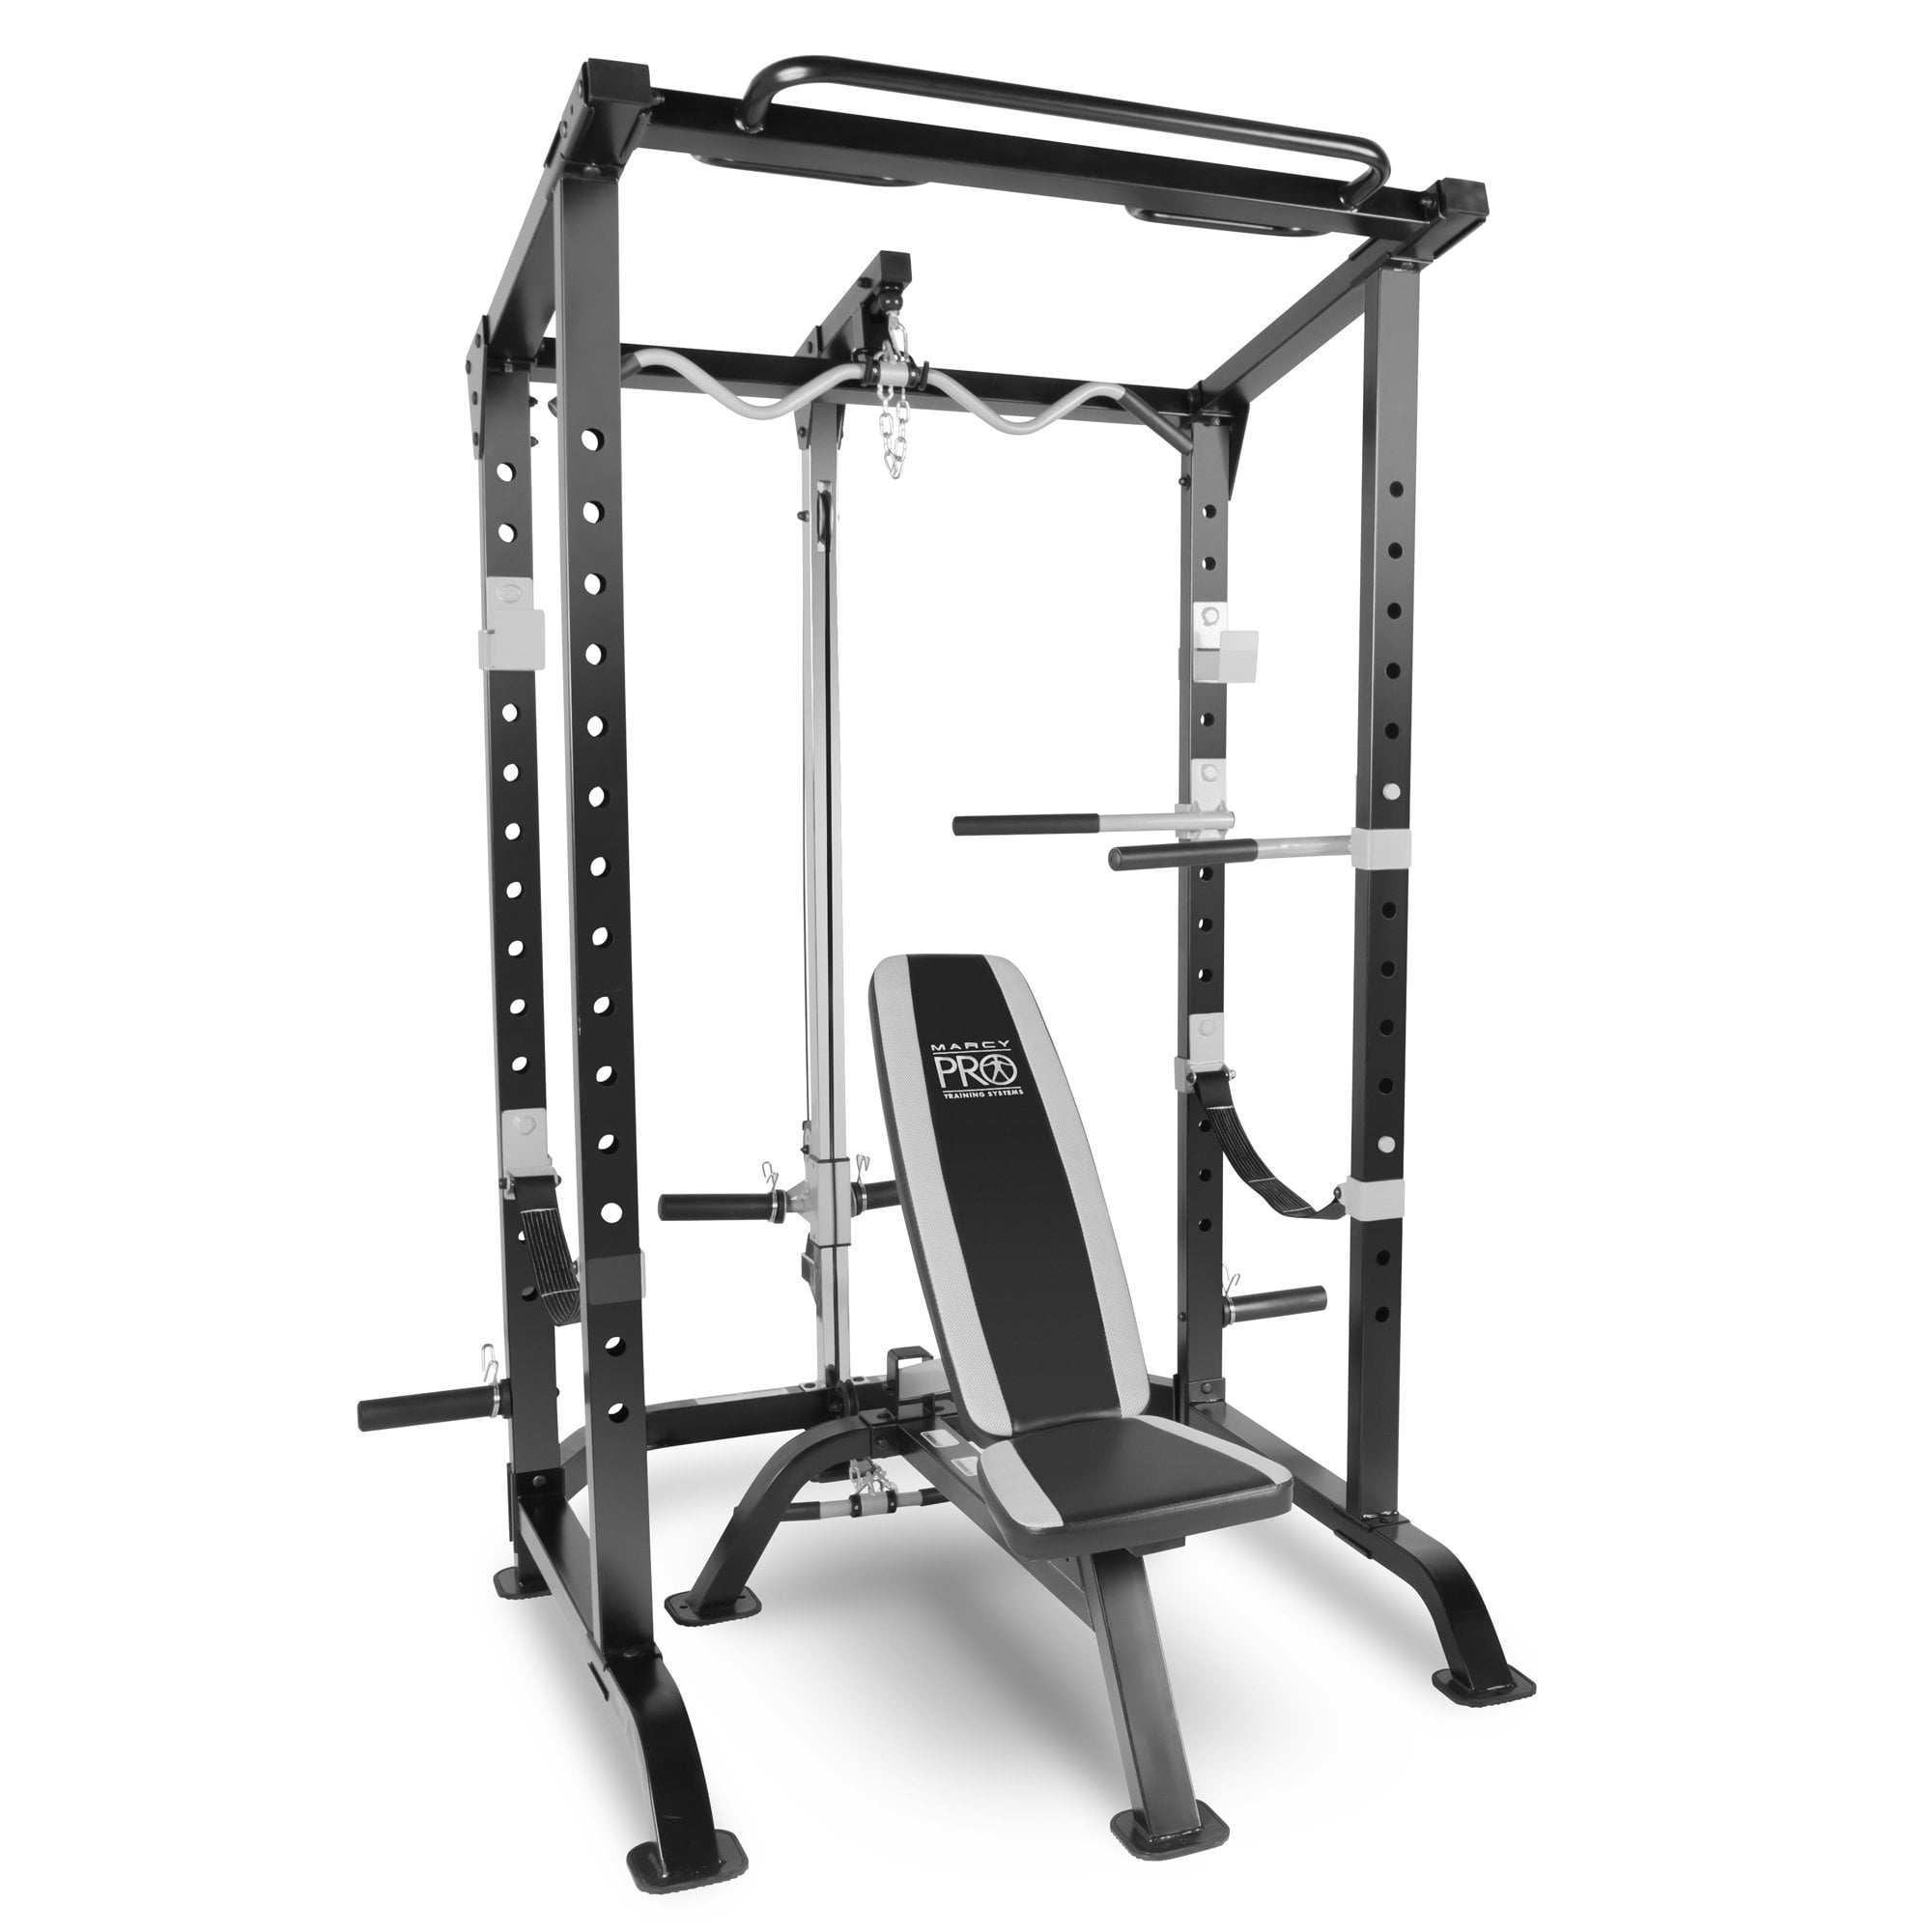 Marcy Pro Full Cage And Weight Bench Personal Home Gym Total Body Free Weights Gfid71 Workout System